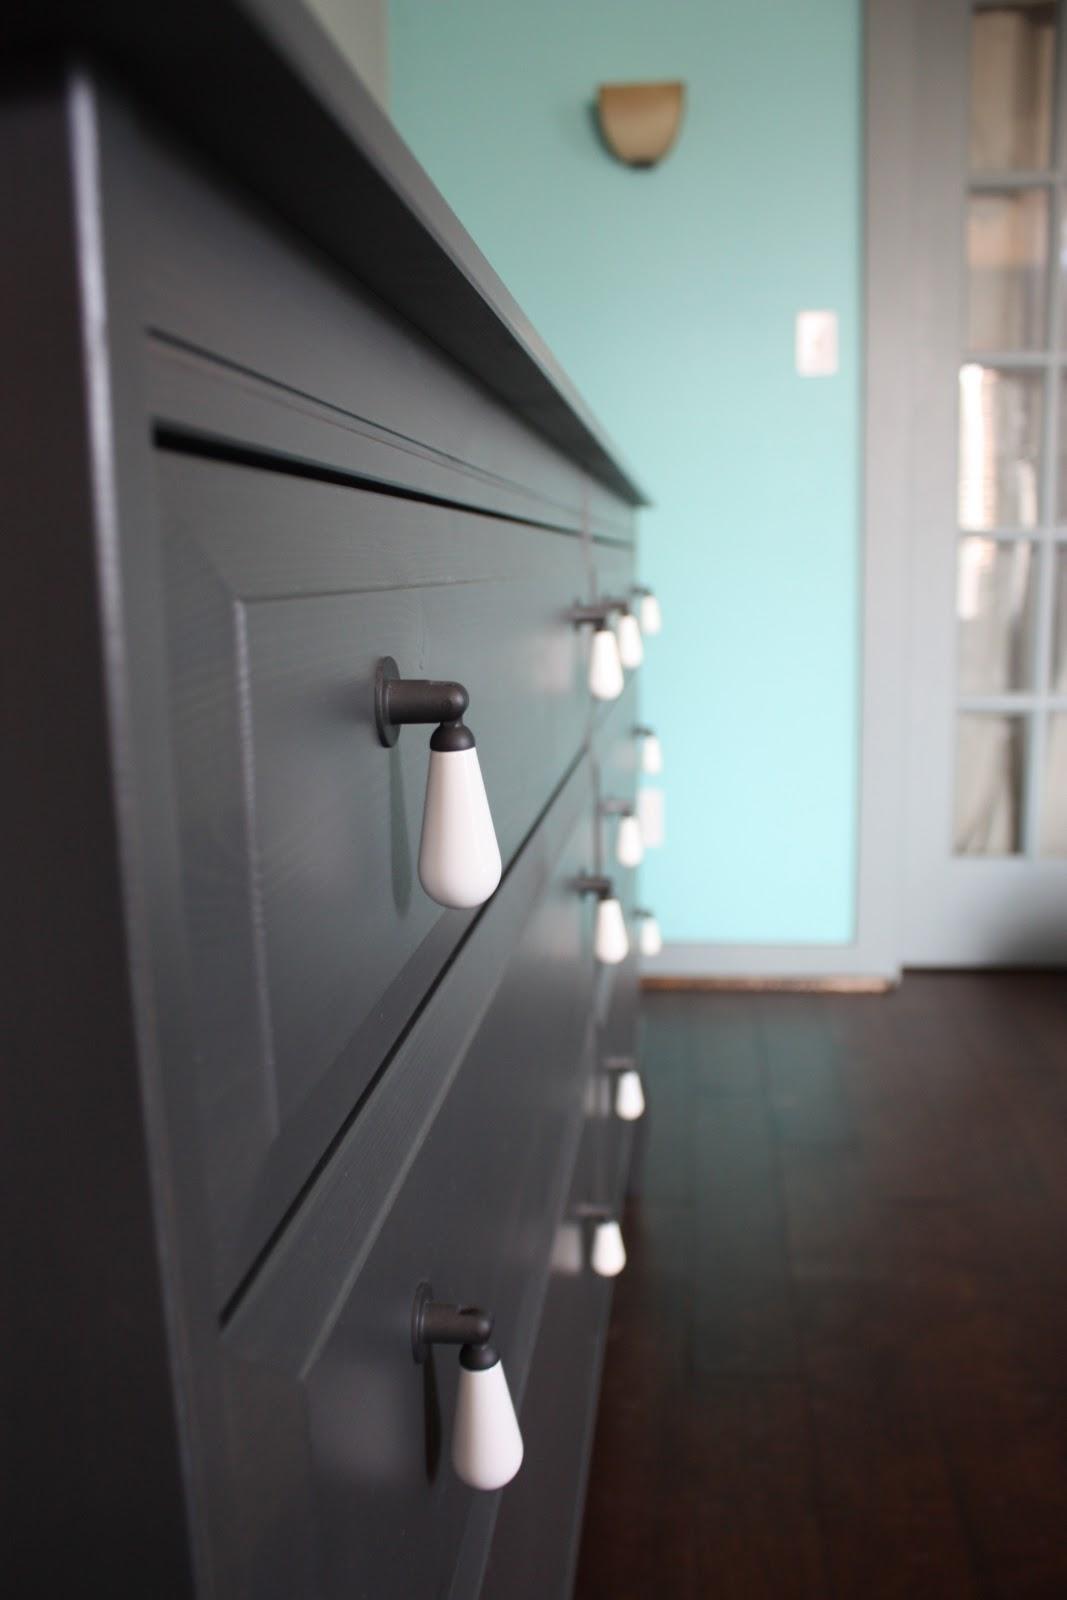 Ikea Utrusta Schubladenfront ~ loved the knobs on the edland series dressers and night stands